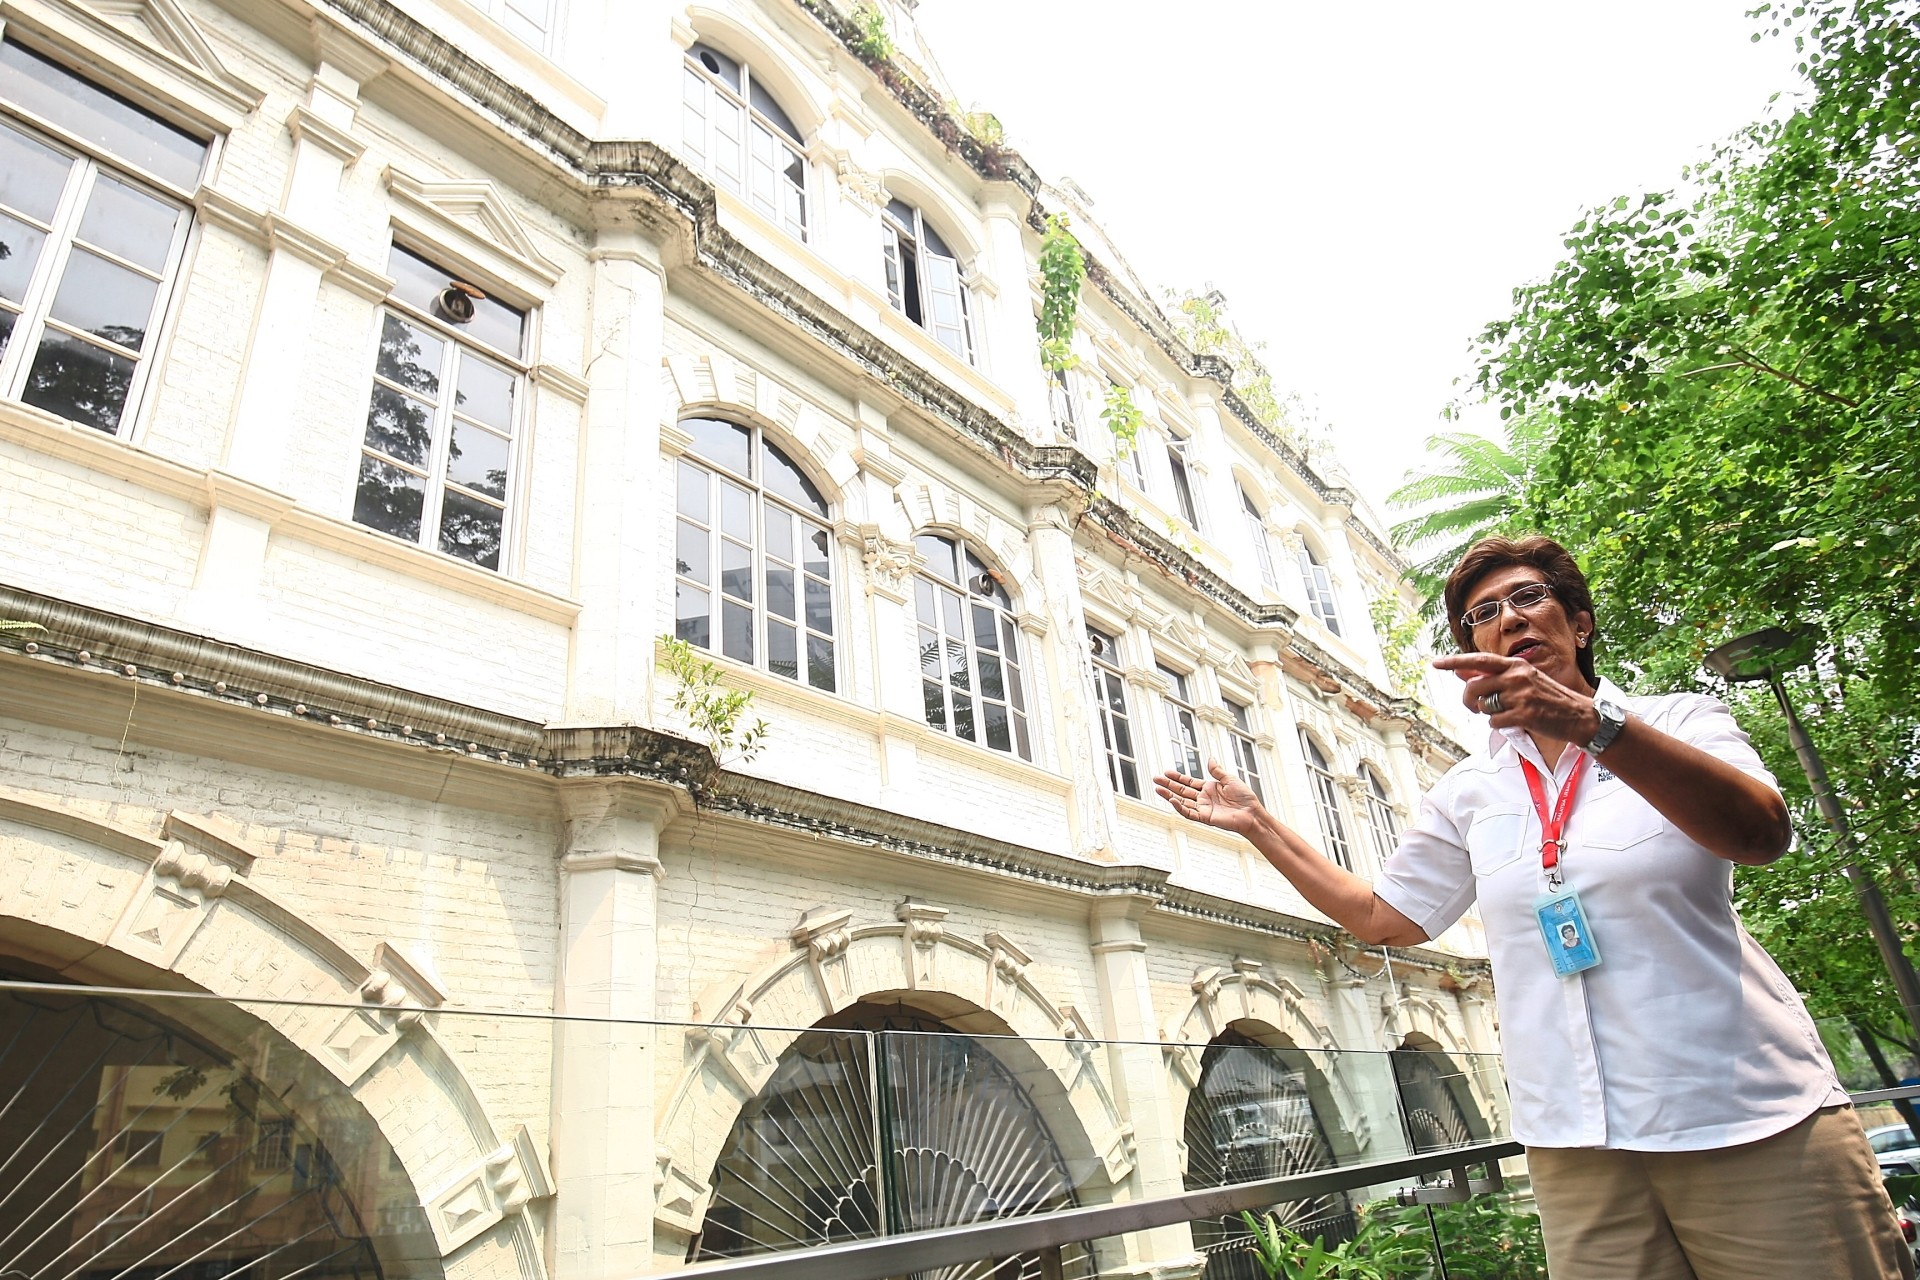 Jane Rai, a former chief heritage guide with Kuala Lumpur Tourism Bureau, was embarrassed when tourists kept pointing out the terrible shape of the heritage buildings.